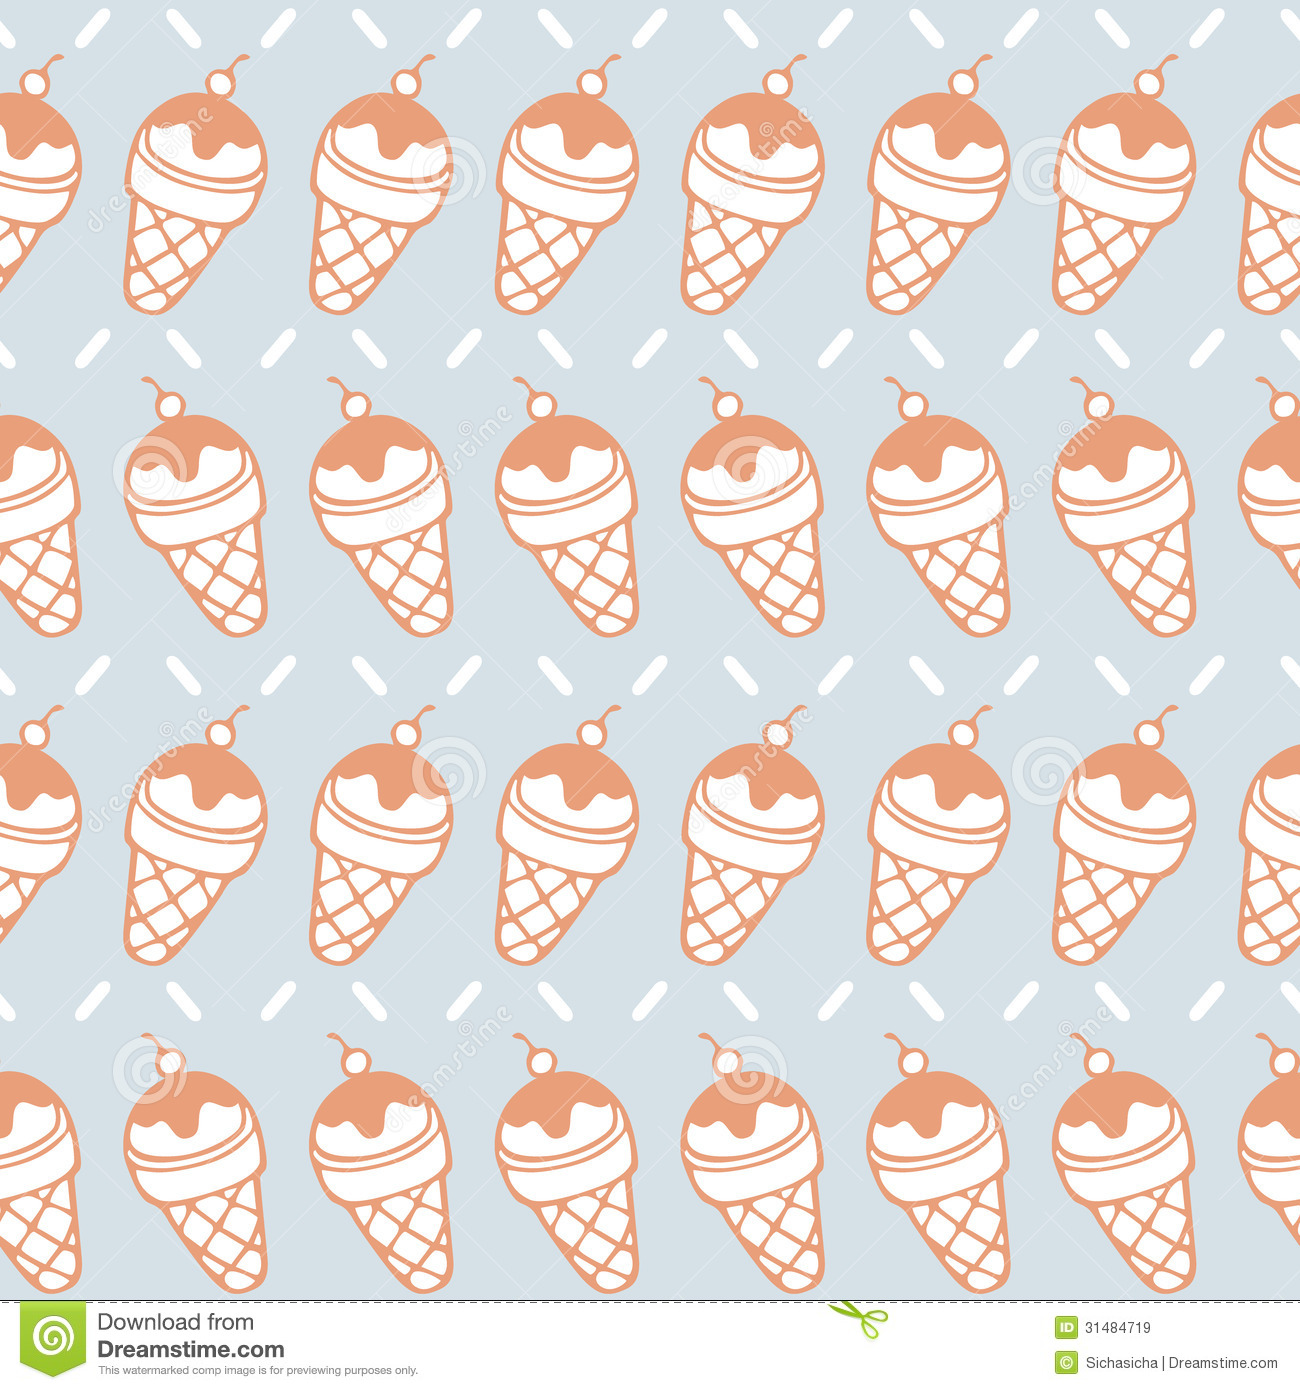 Ice Cream Cones Background Royalty Free Vector Image: Seamless Pattern Of Ice Cream Cone Background Royalty Free